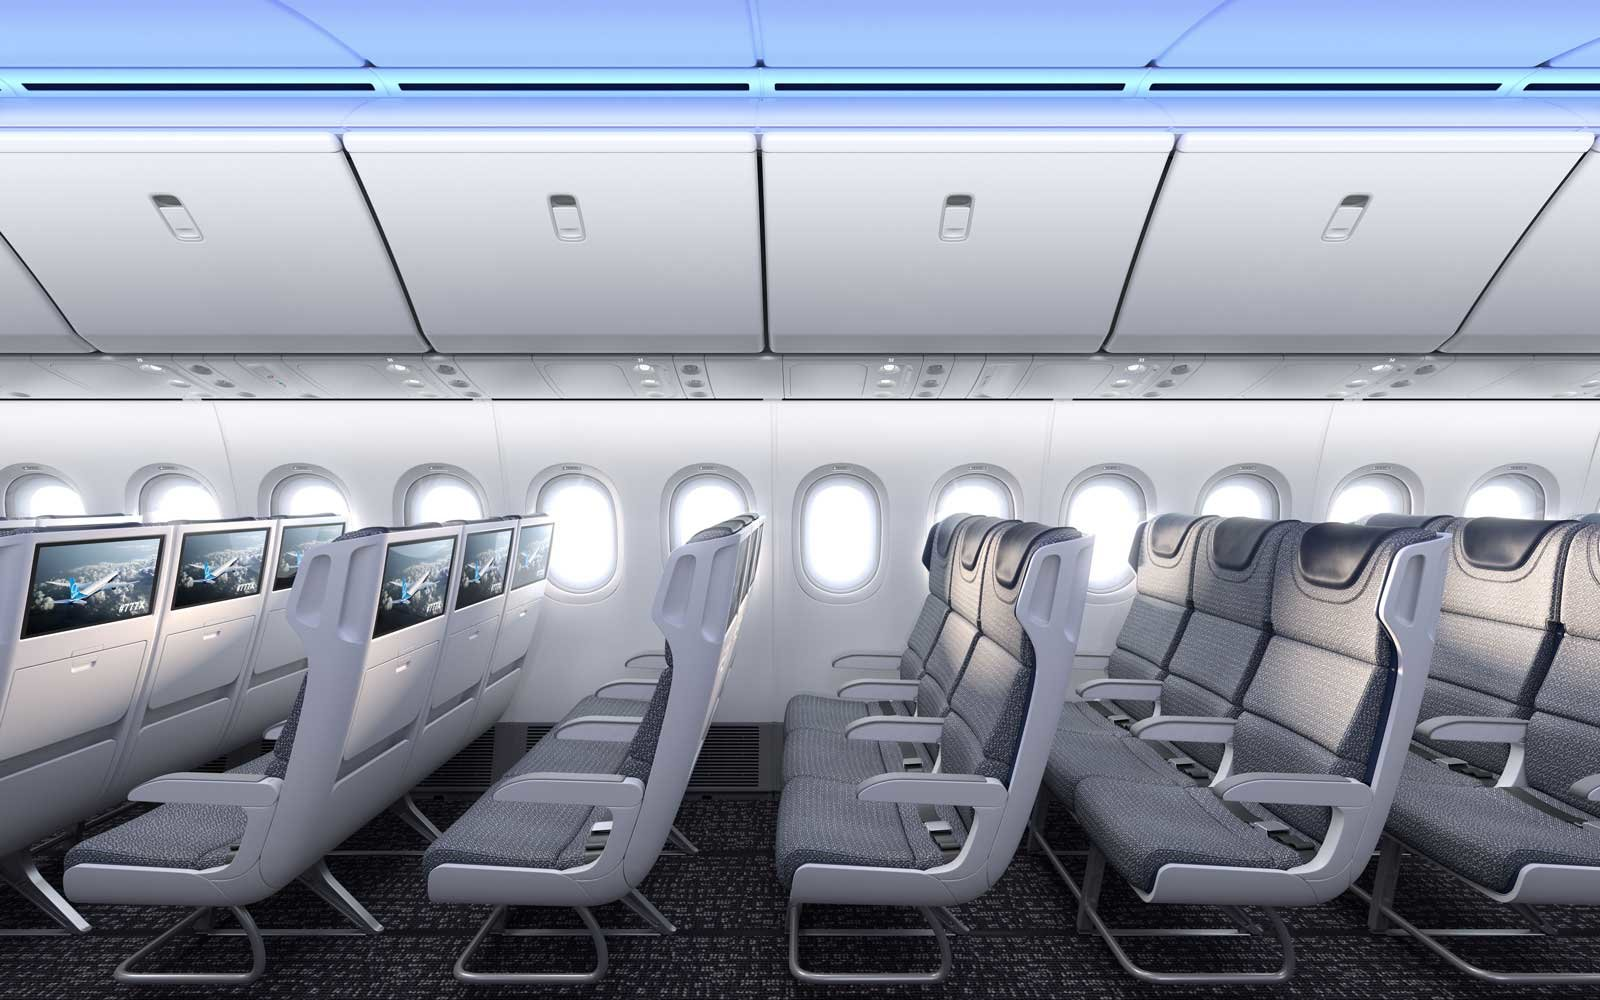 Boeing S New 777x Is The World Gest Twin Engine Jet Here What It Looks Like Inside Travel Leisure